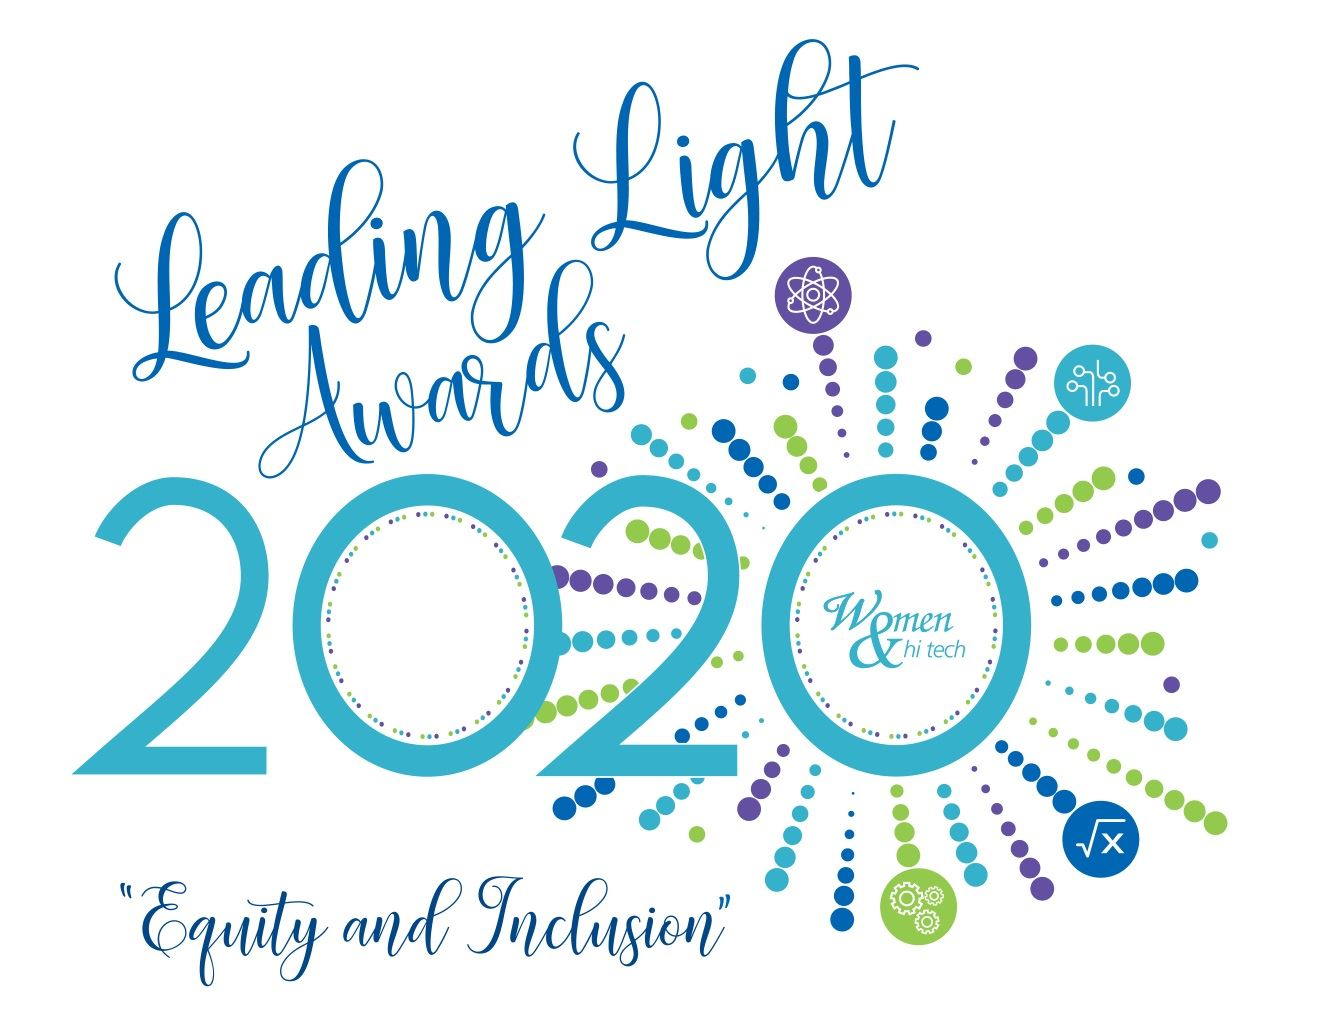 Women & Hi Tech's 2020 Leading Light Awards and Scholarship Gala